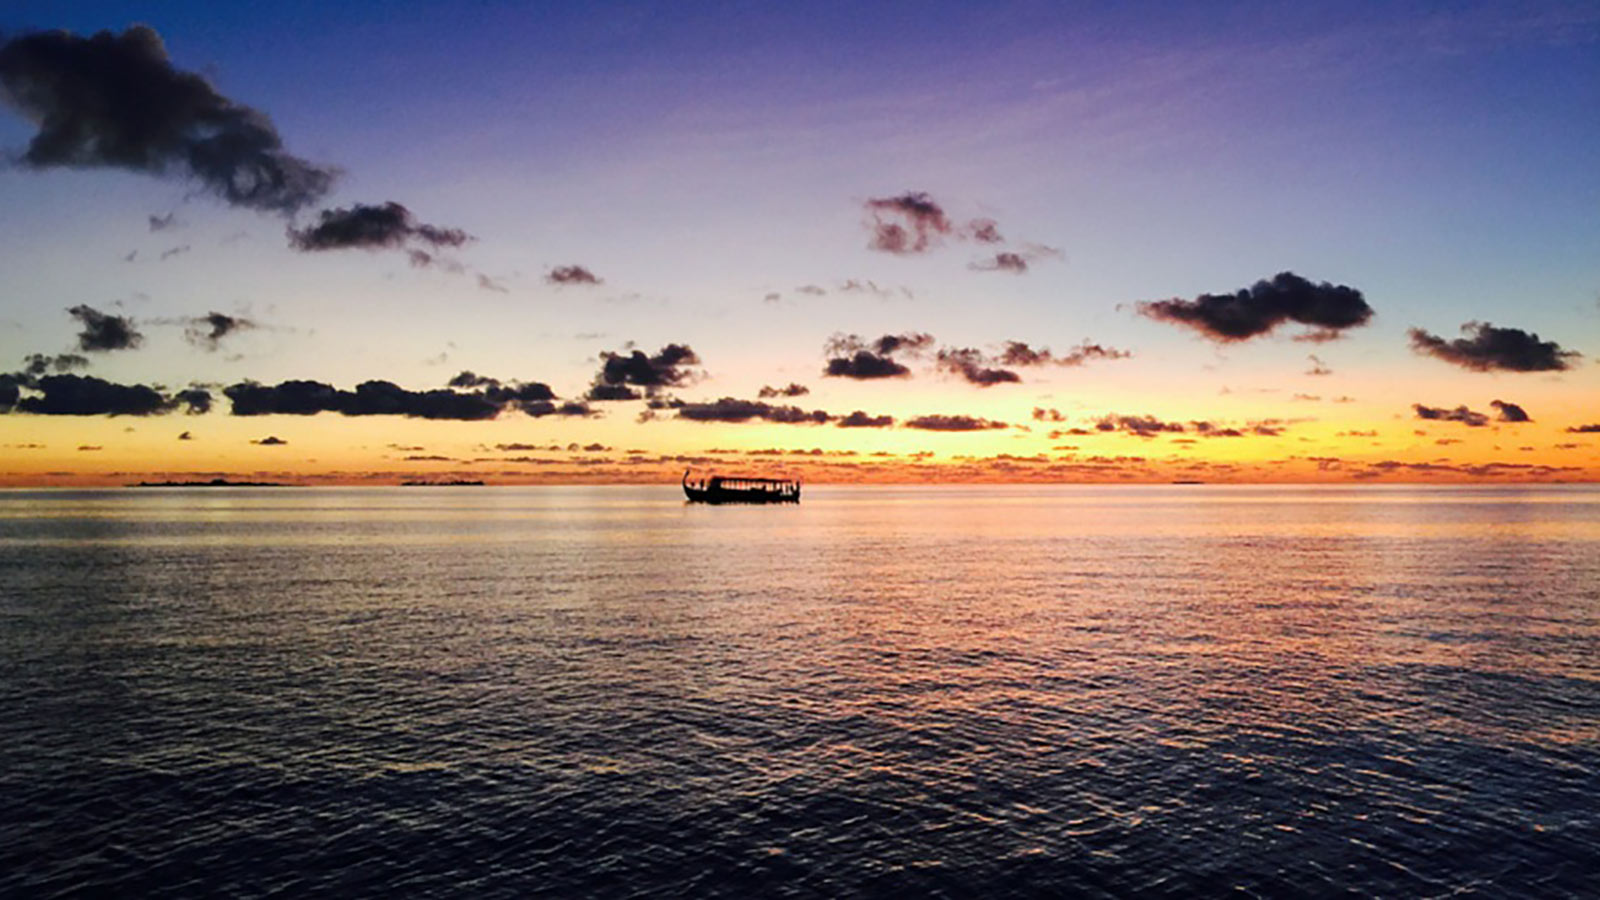 Sunrise Sunset Cruise Maldives